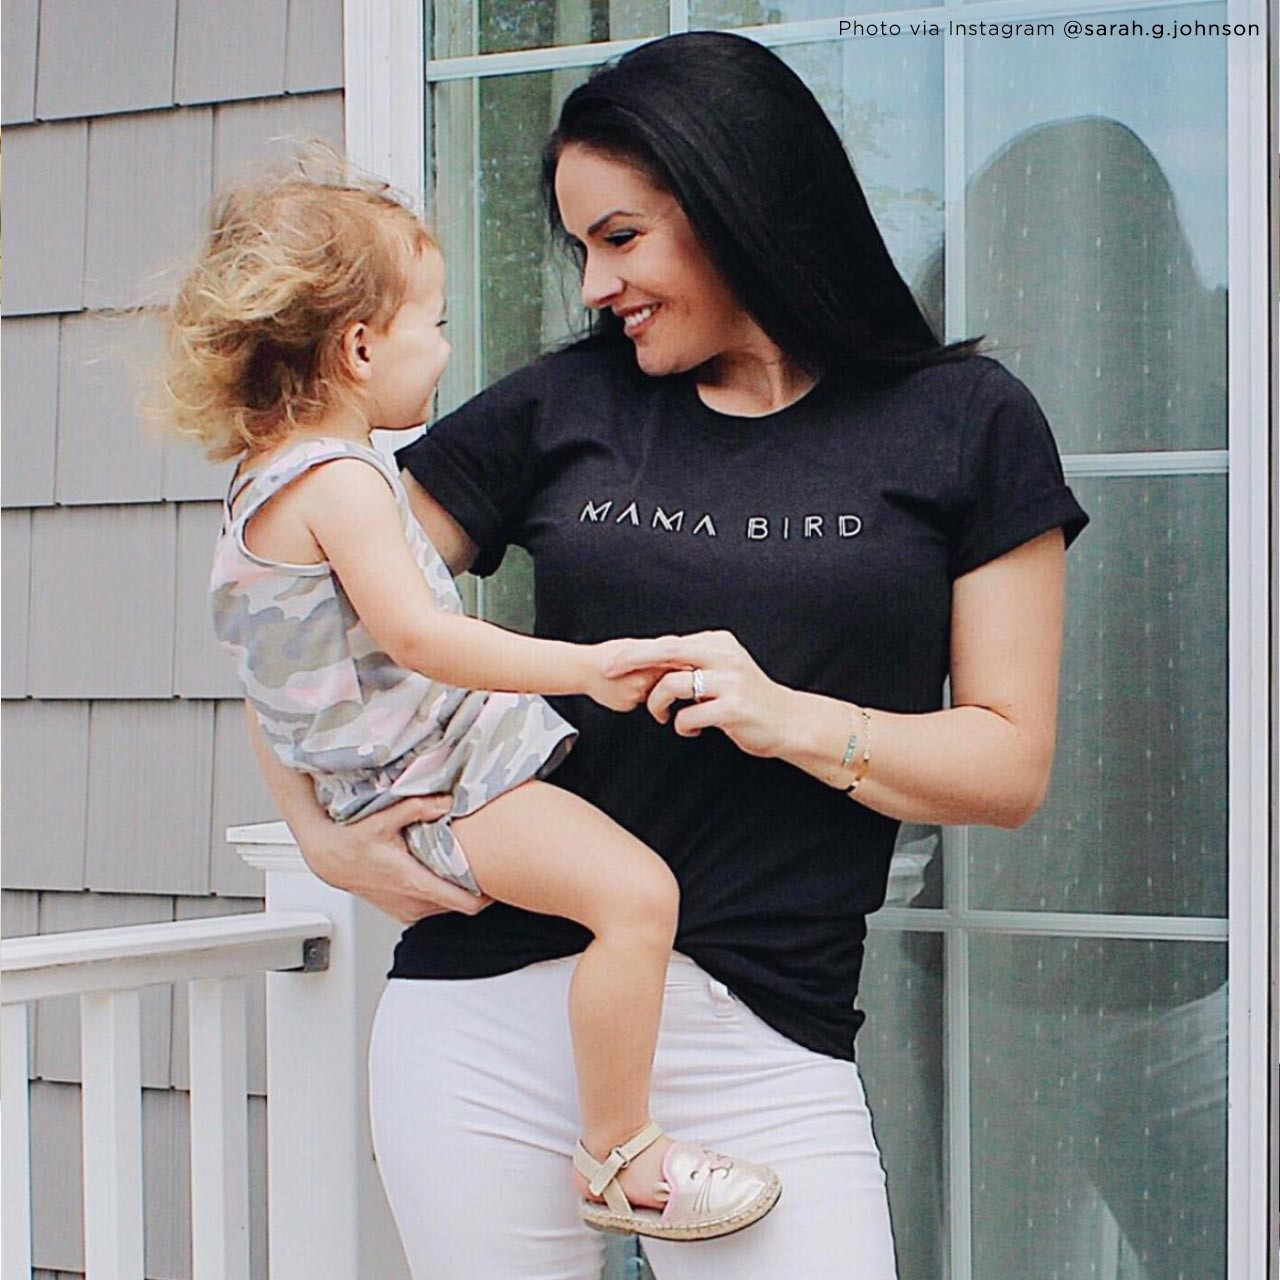 MAMA BIRD Vintage T-Shirt (Color on Light Gray Fleck) from The Printed Home (Photo Credit: @sarah.g.johnson)